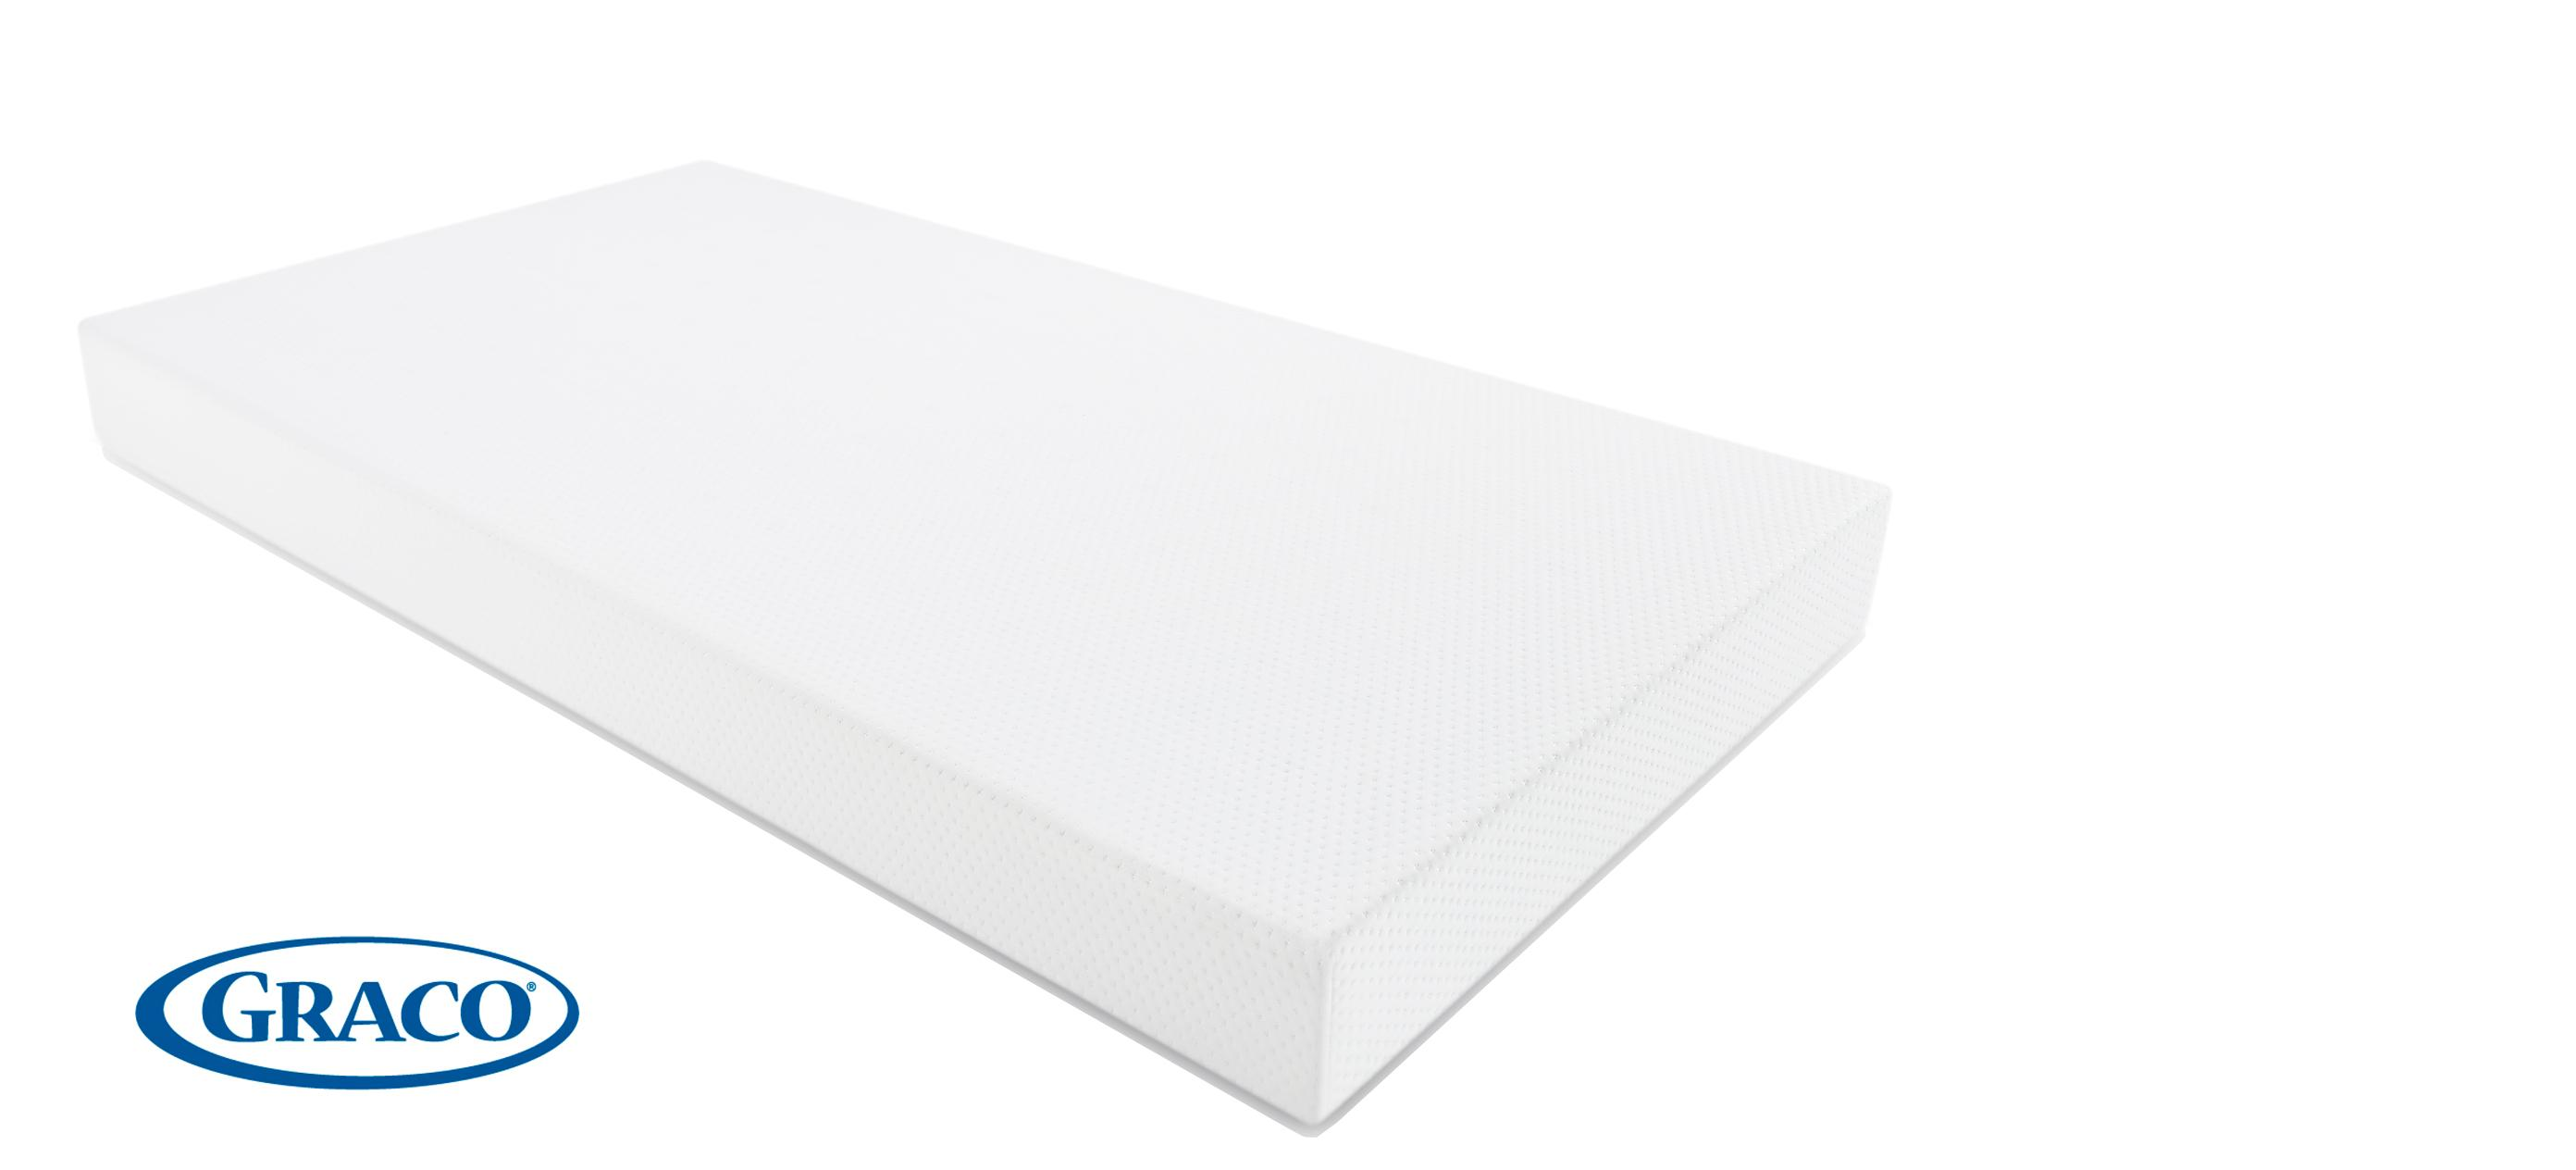 Graco Premium Foam Crib and Toddler Bed Mattress: Amazon ...